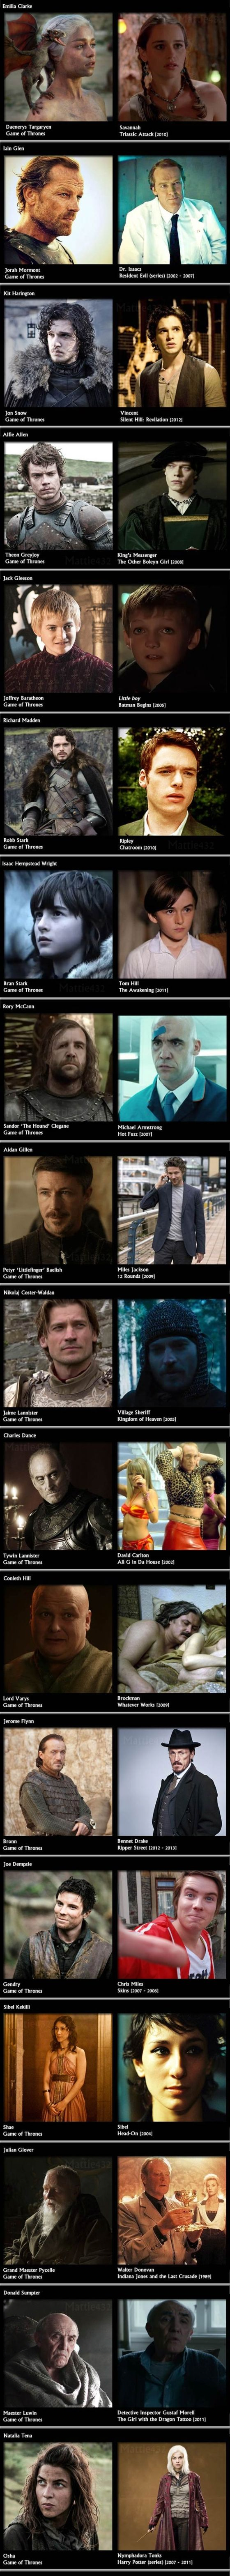 Where you've seen them before Game of Thrones 2